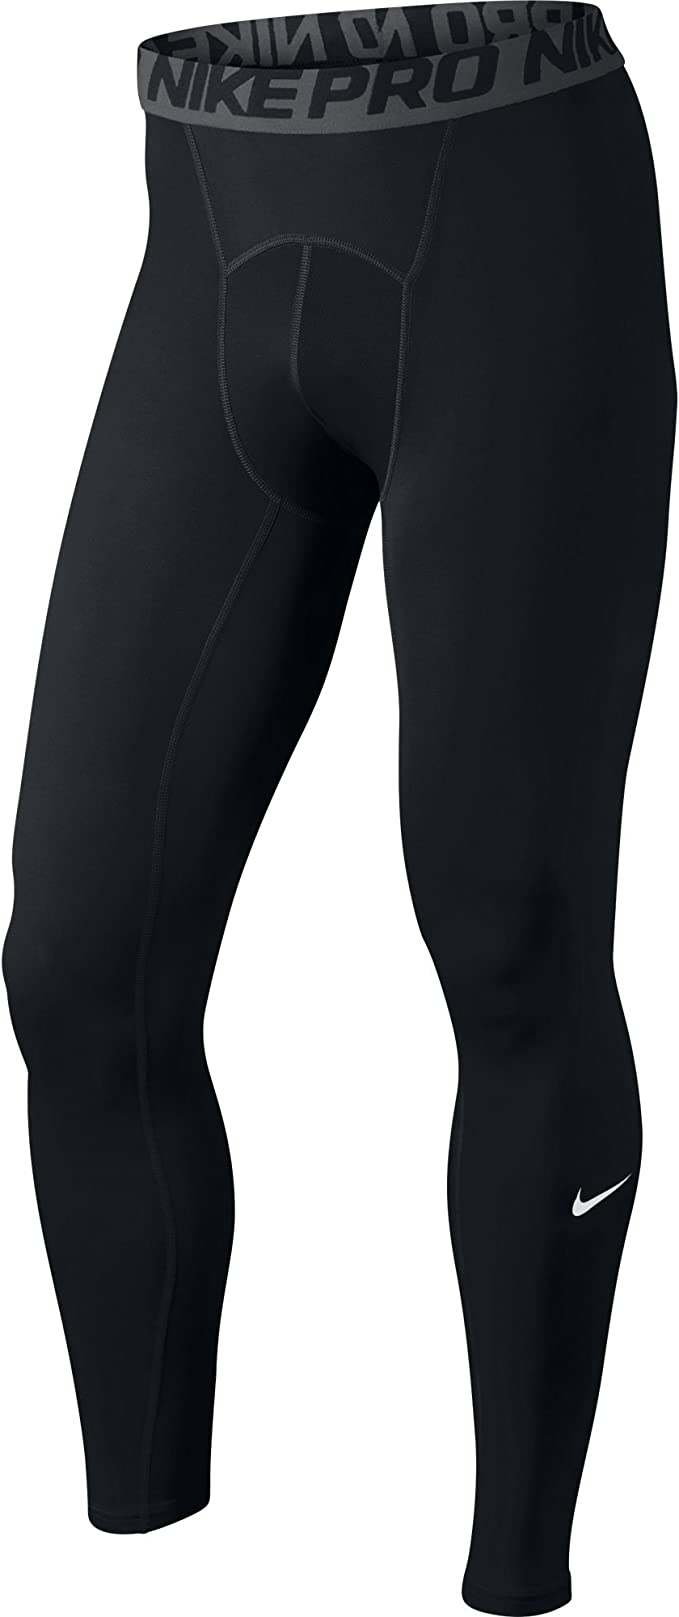 Nike Synthetic Dri fit Thermal Running Pants in BlackBlack